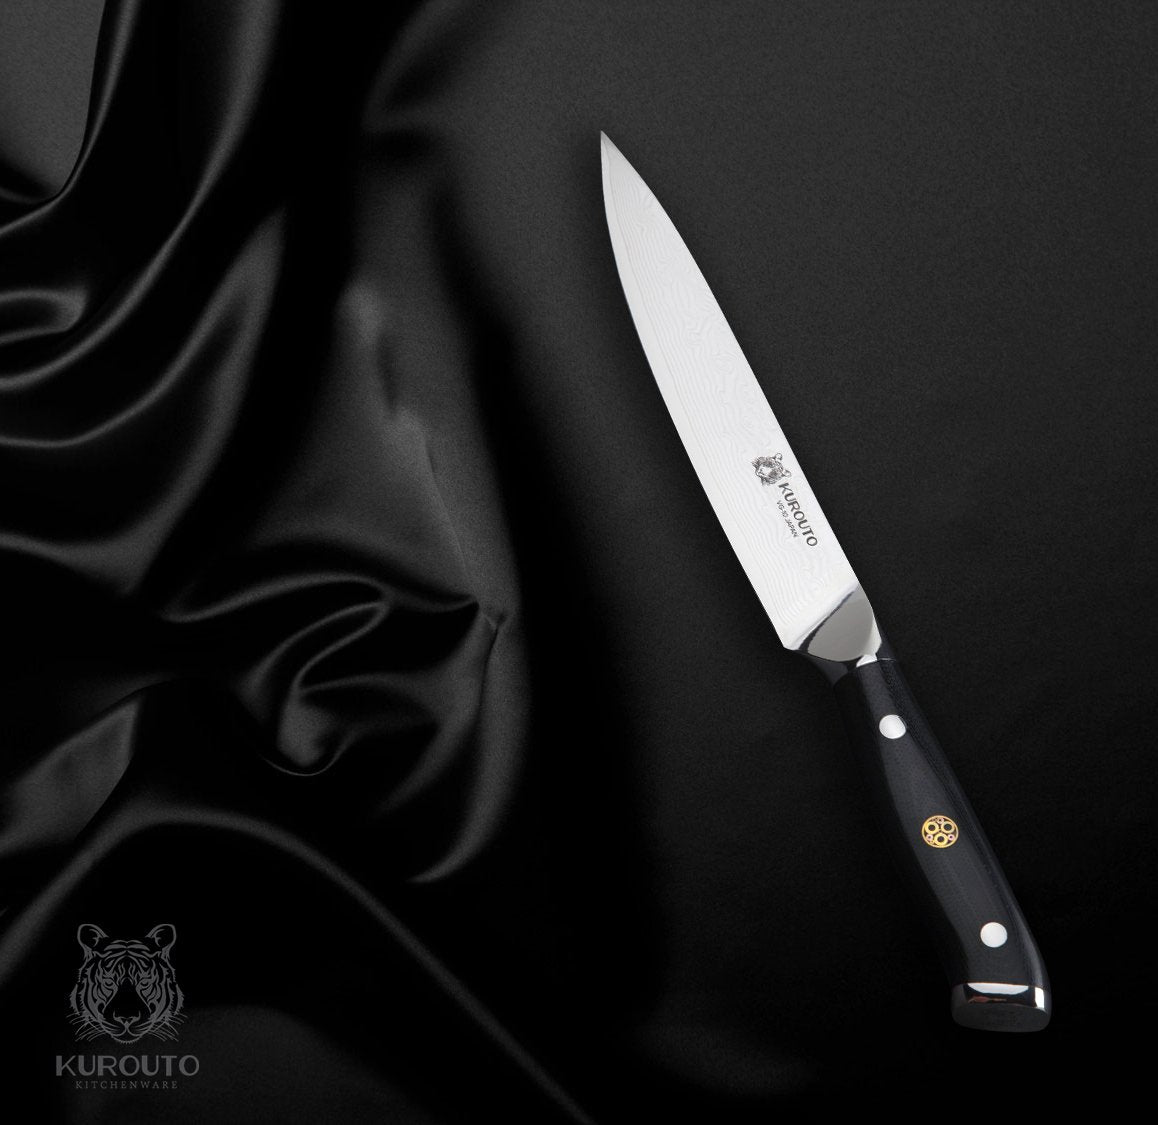 5-inch VG10 Utility Knife- 66 layers of High Carbon Damascus Stainless Steel Cladding—Kintaro Series—Kurouto Kitchenware